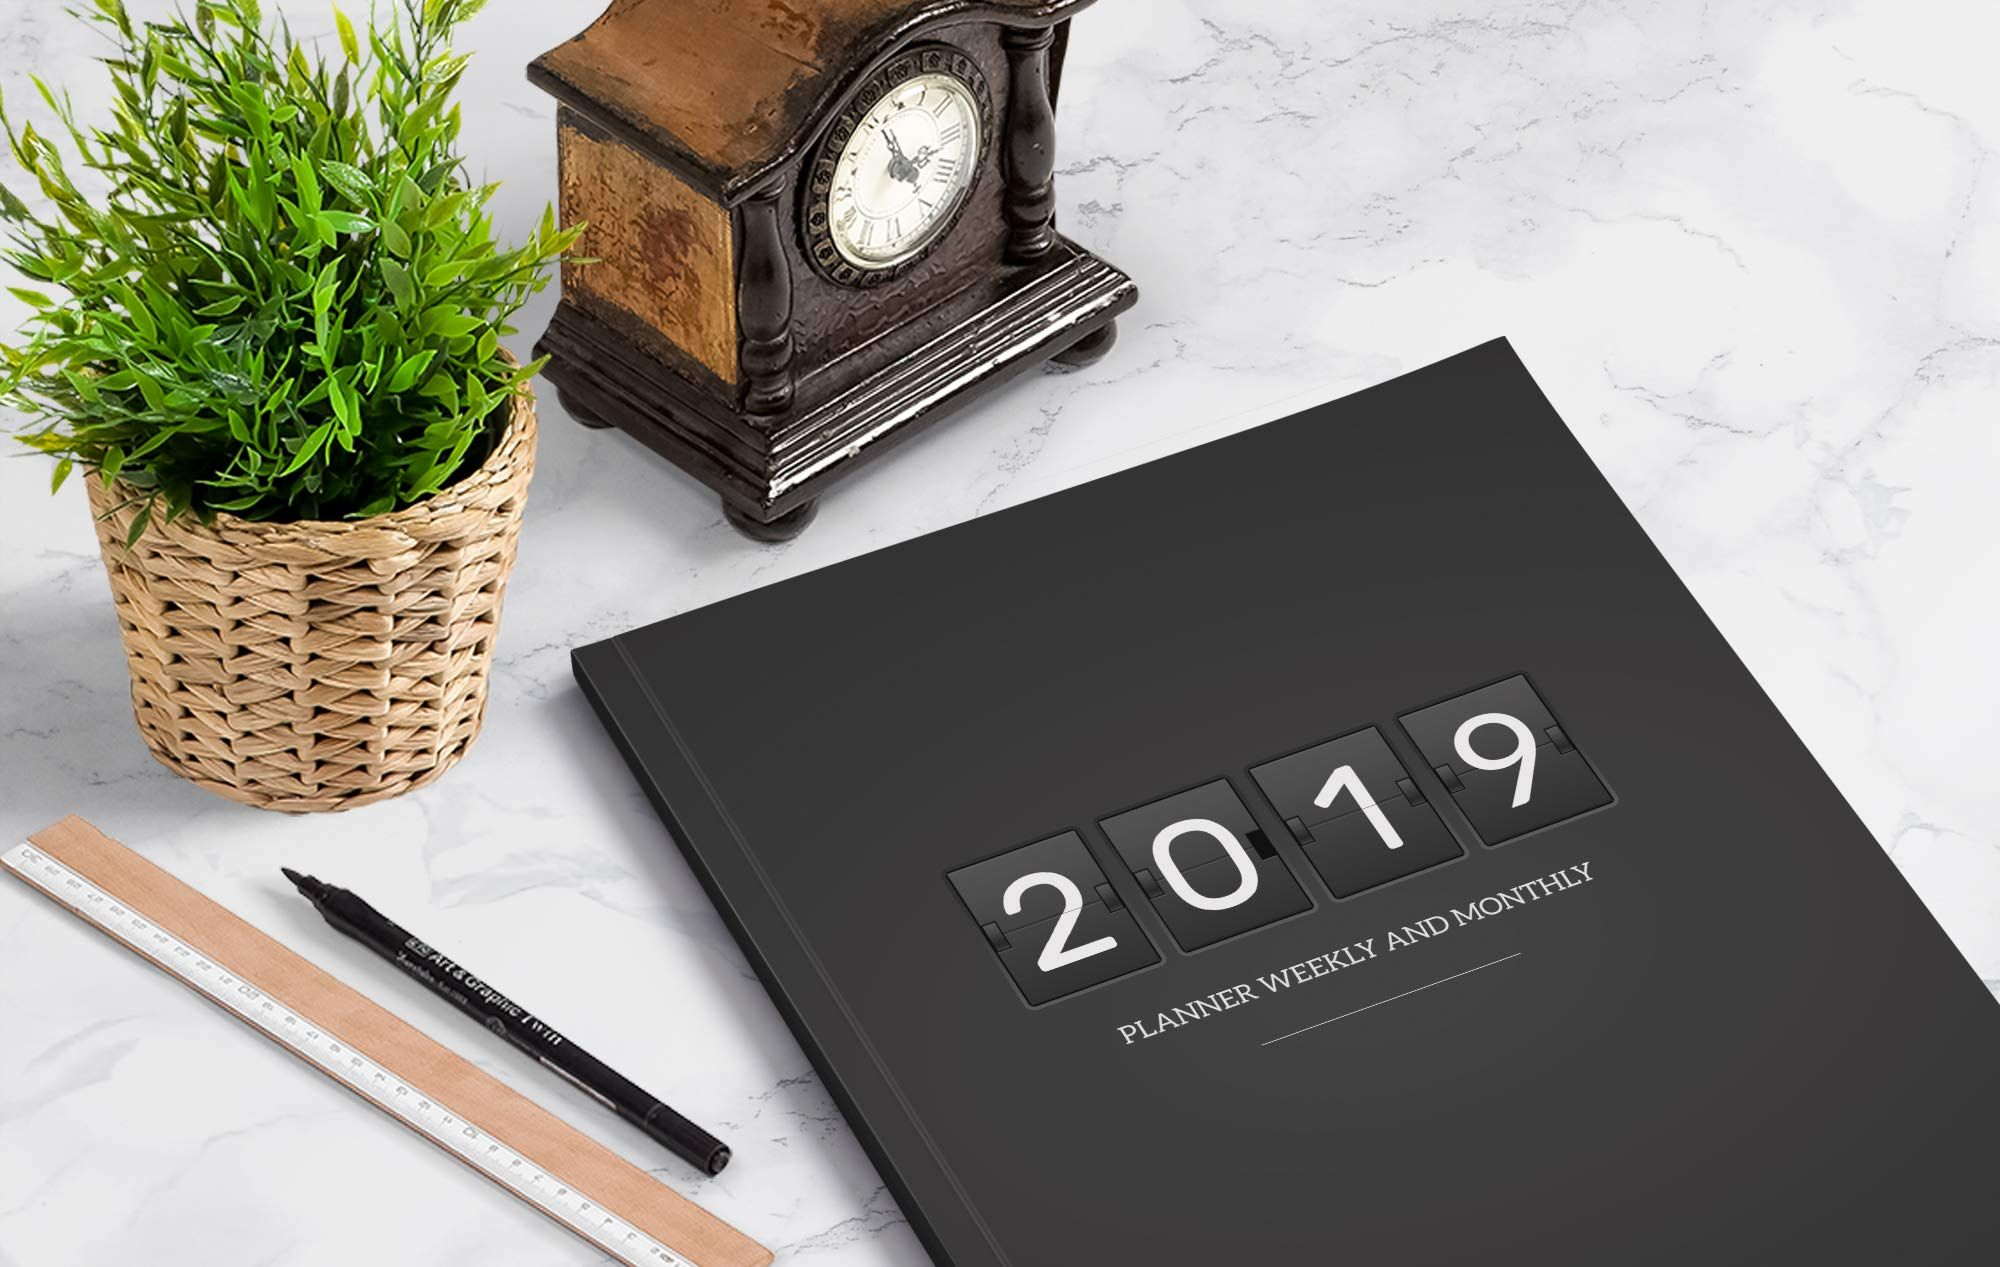 2019 planner weekly and monthly a year 365 daily 52 week journal planner calendar schedule organizer appointment notebook monthly planner to do happiness gratitude book men cover volume 1